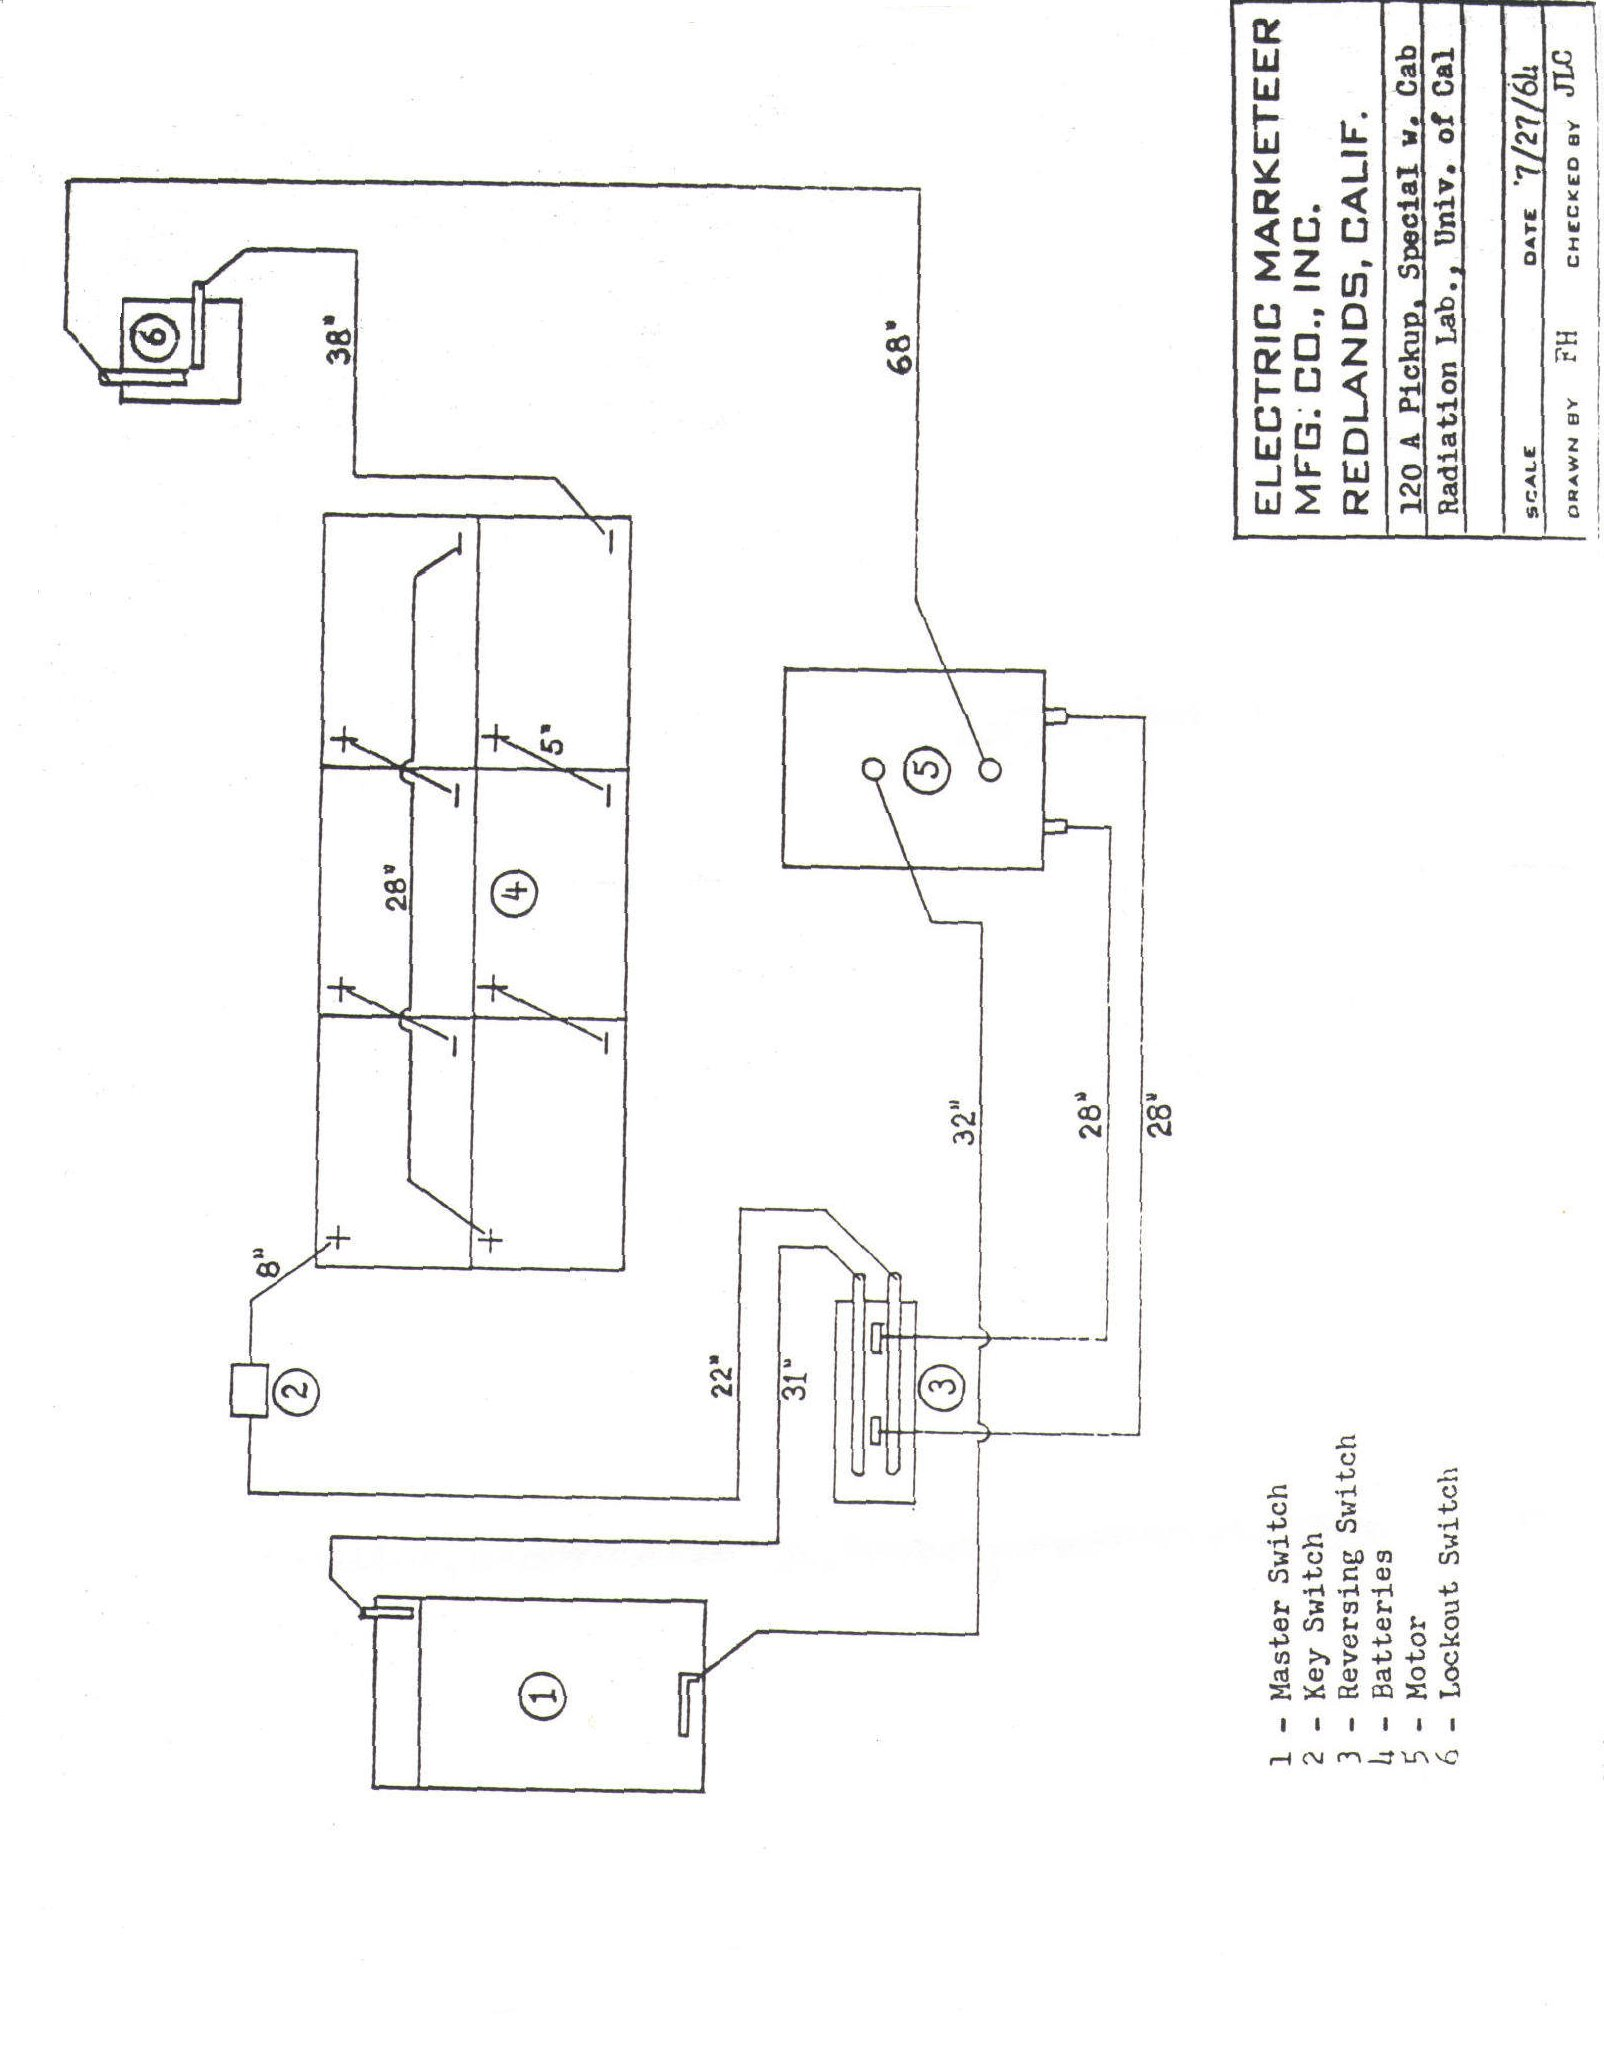 2005 bmw 325i ignition coil diagram  2005  free engine